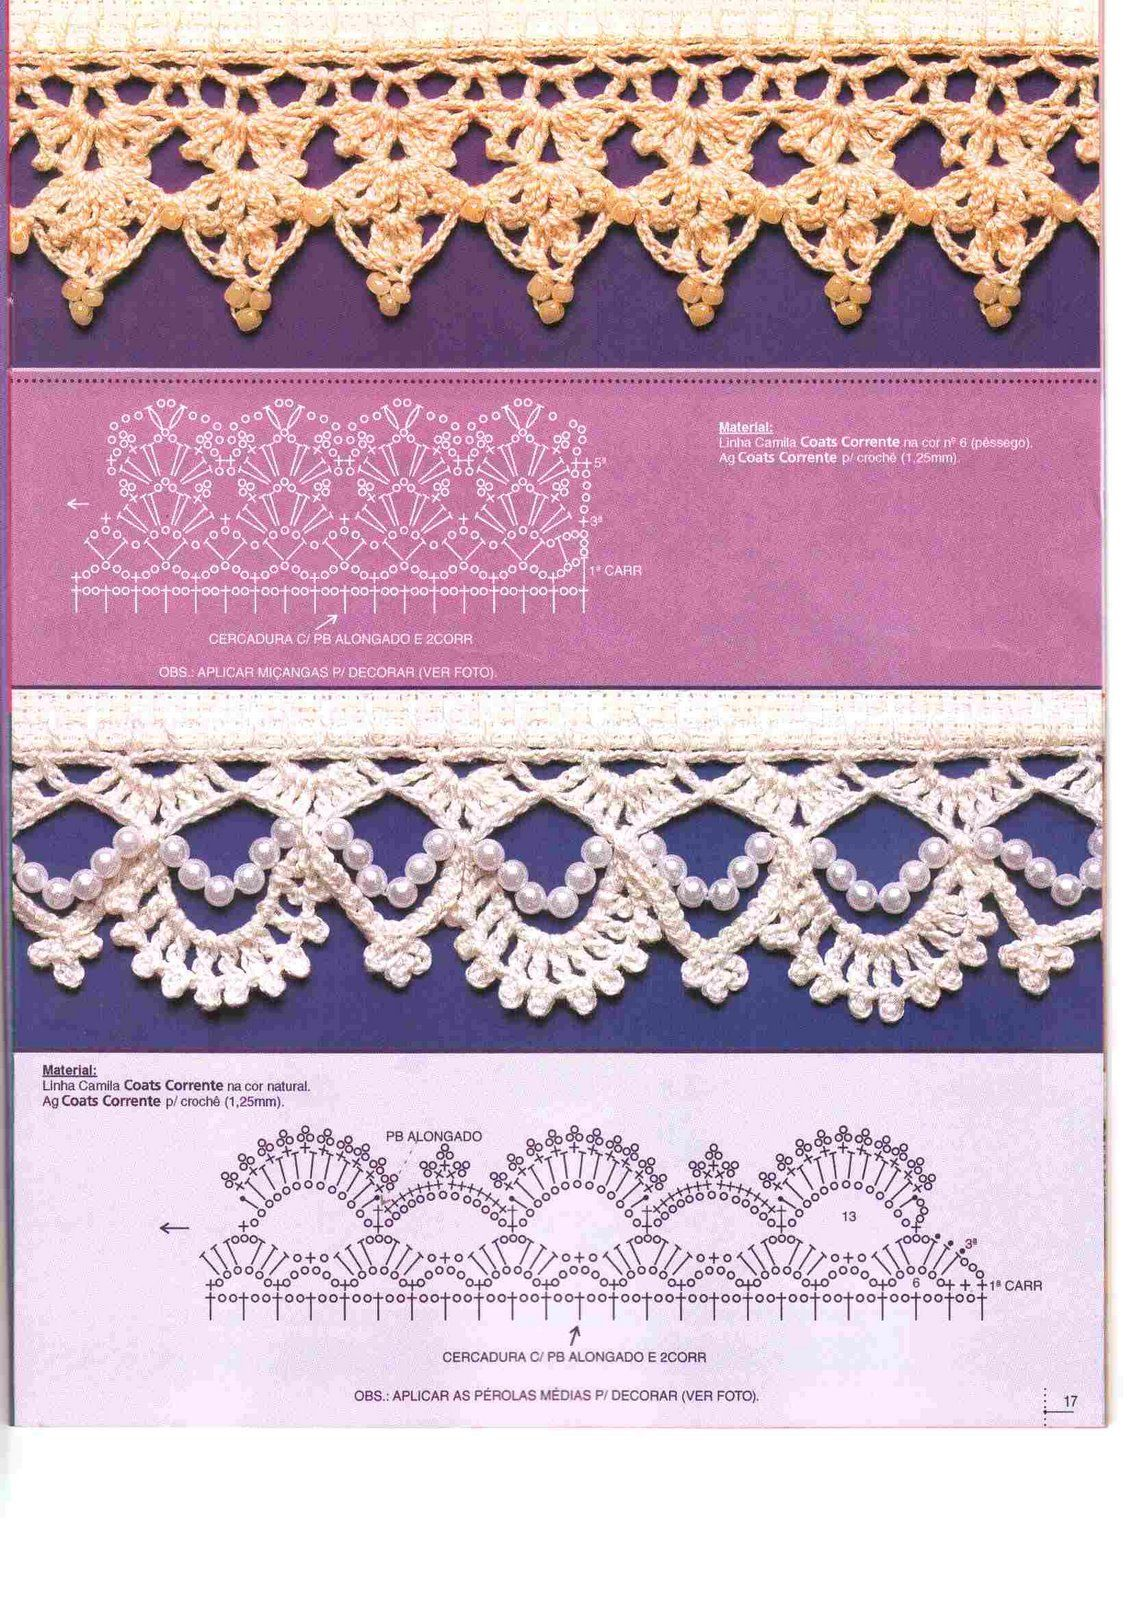 Charts for crochet edgings with bead accents no instructions hel veel mooie randjes crochet lace edging with pearls pattern bankloansurffo Image collections